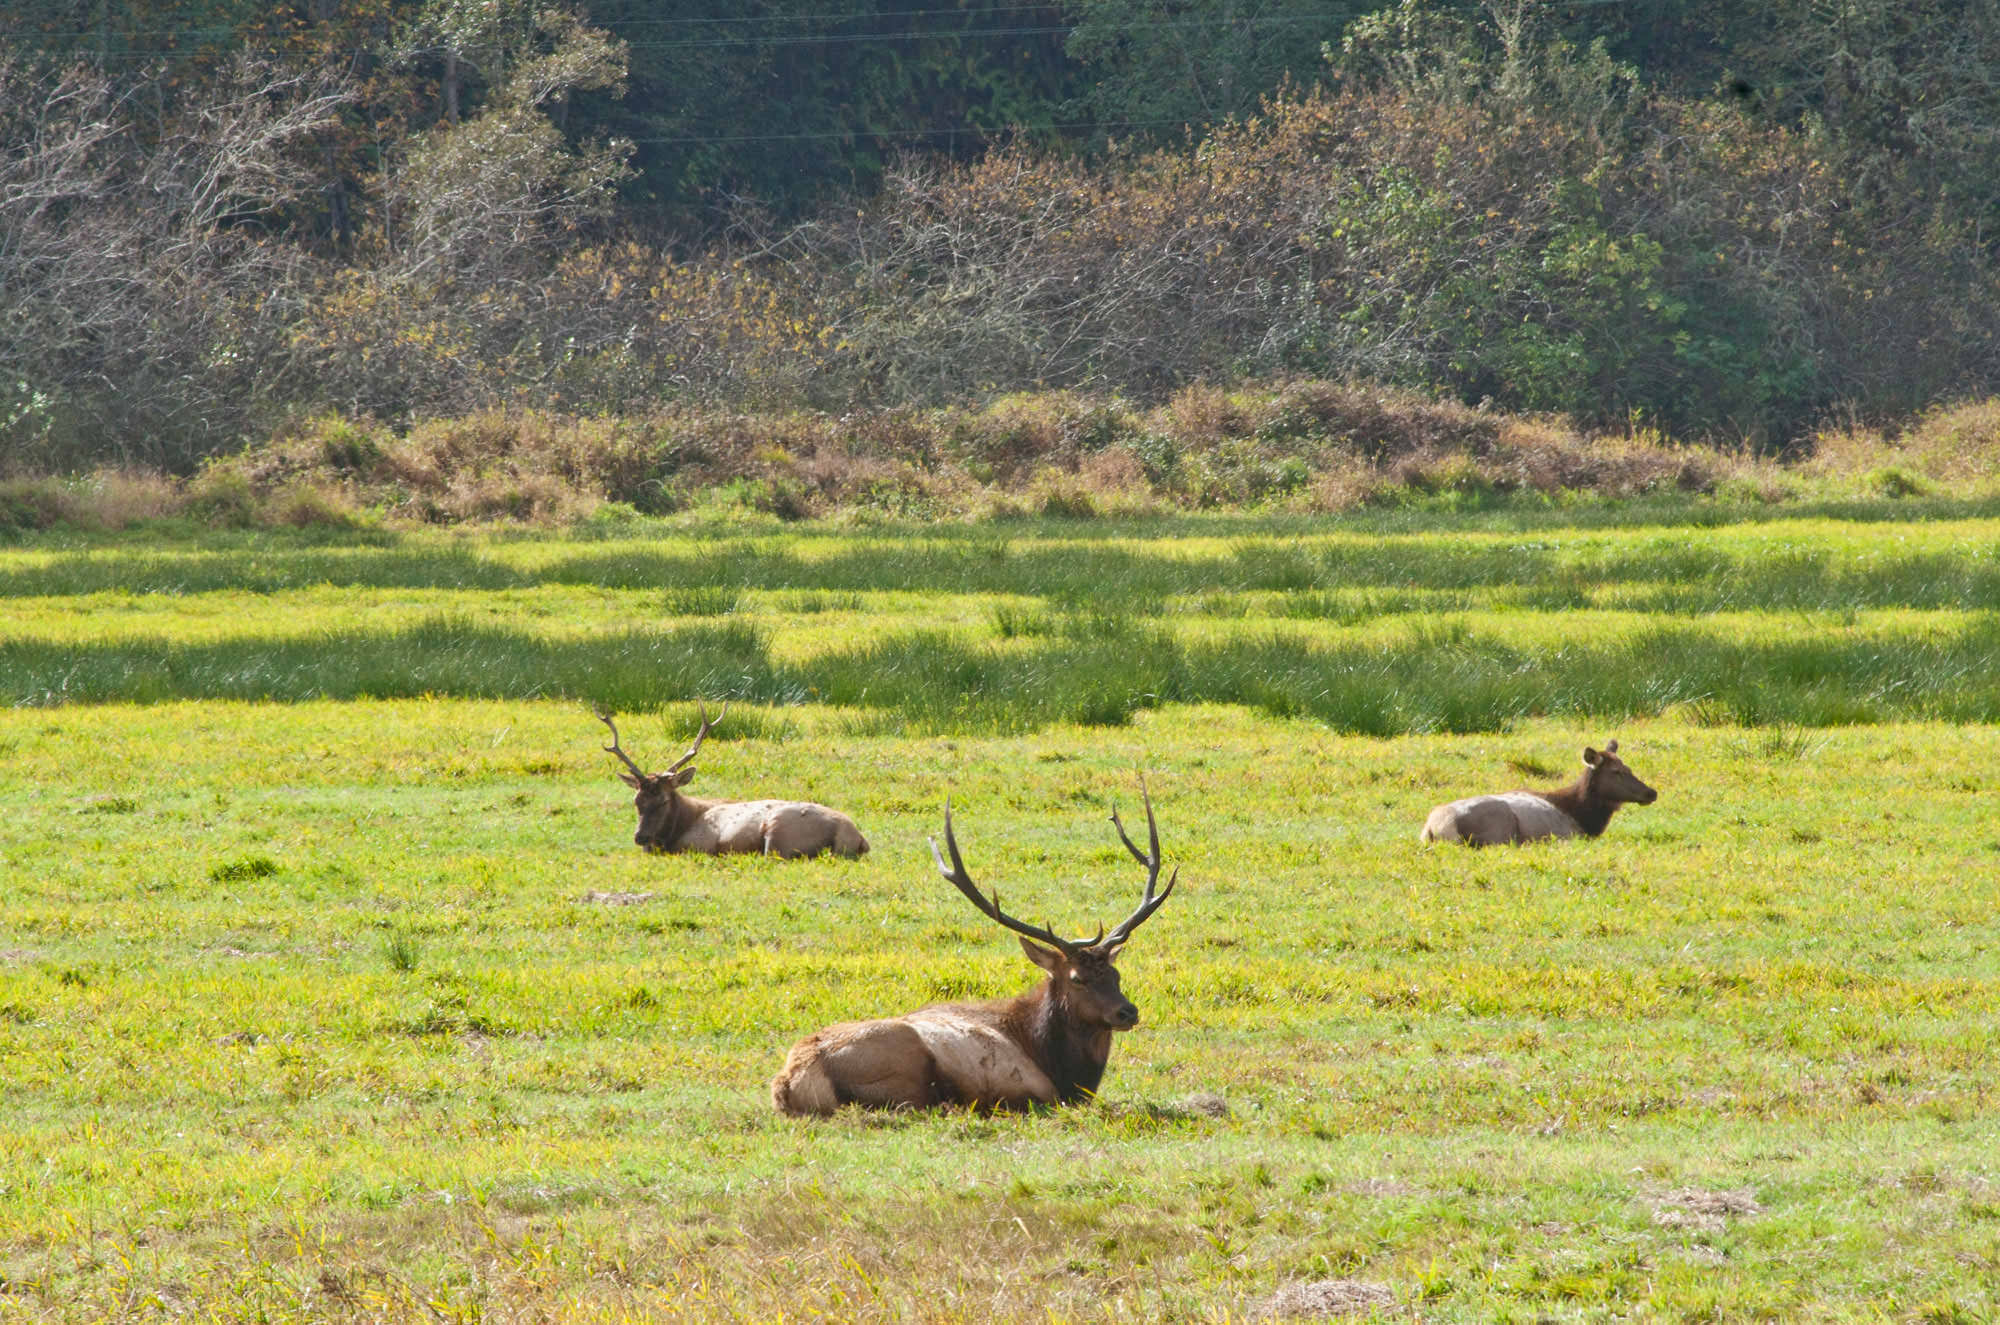 Three Roosevelt elk rest on the bright green grass of the Dean Creek Elk Viewing Area near Reedsport, Oregon.